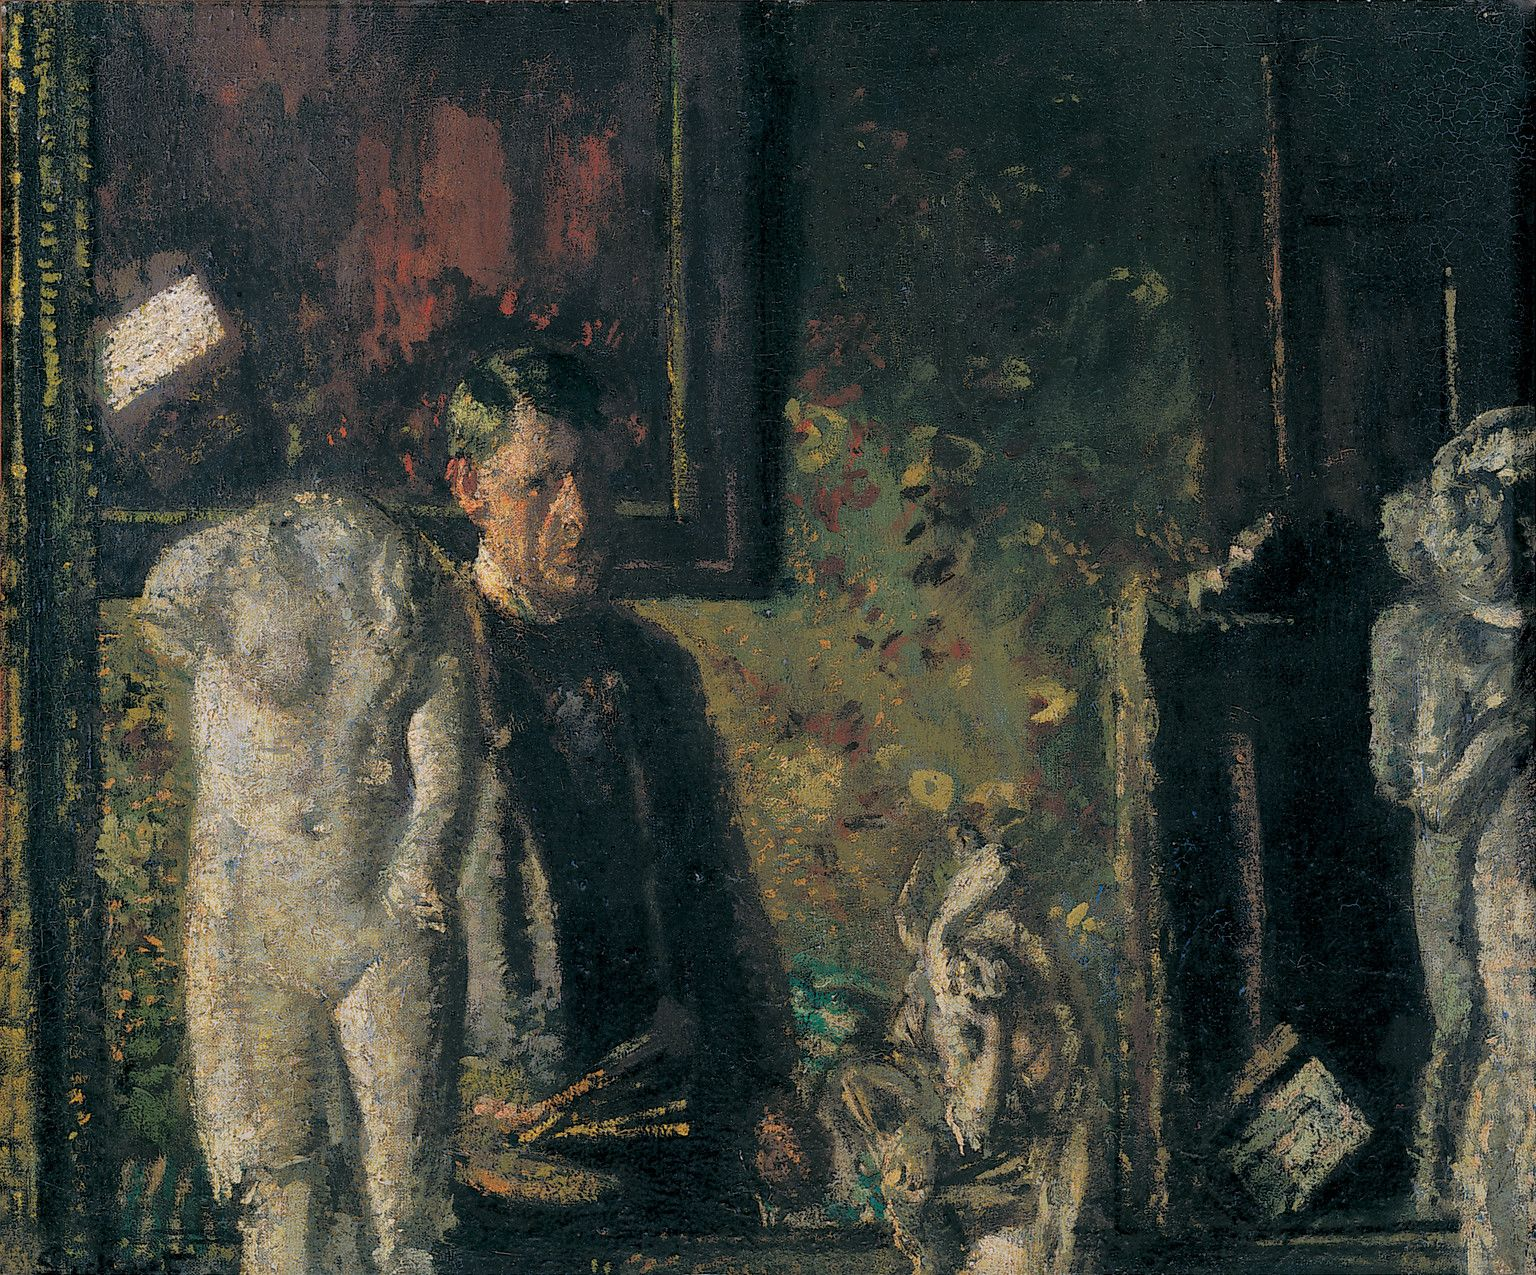 Walter Sickert - Self-Portrait (1907) The Painter in his Studio